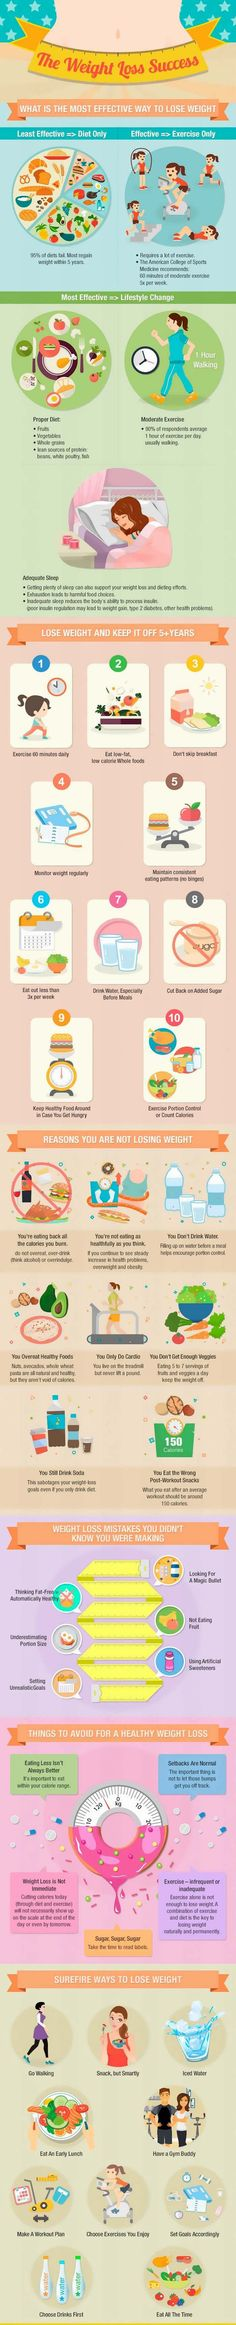 The way to lose 23 pounds in 21 days. The most effective ways to lose weight